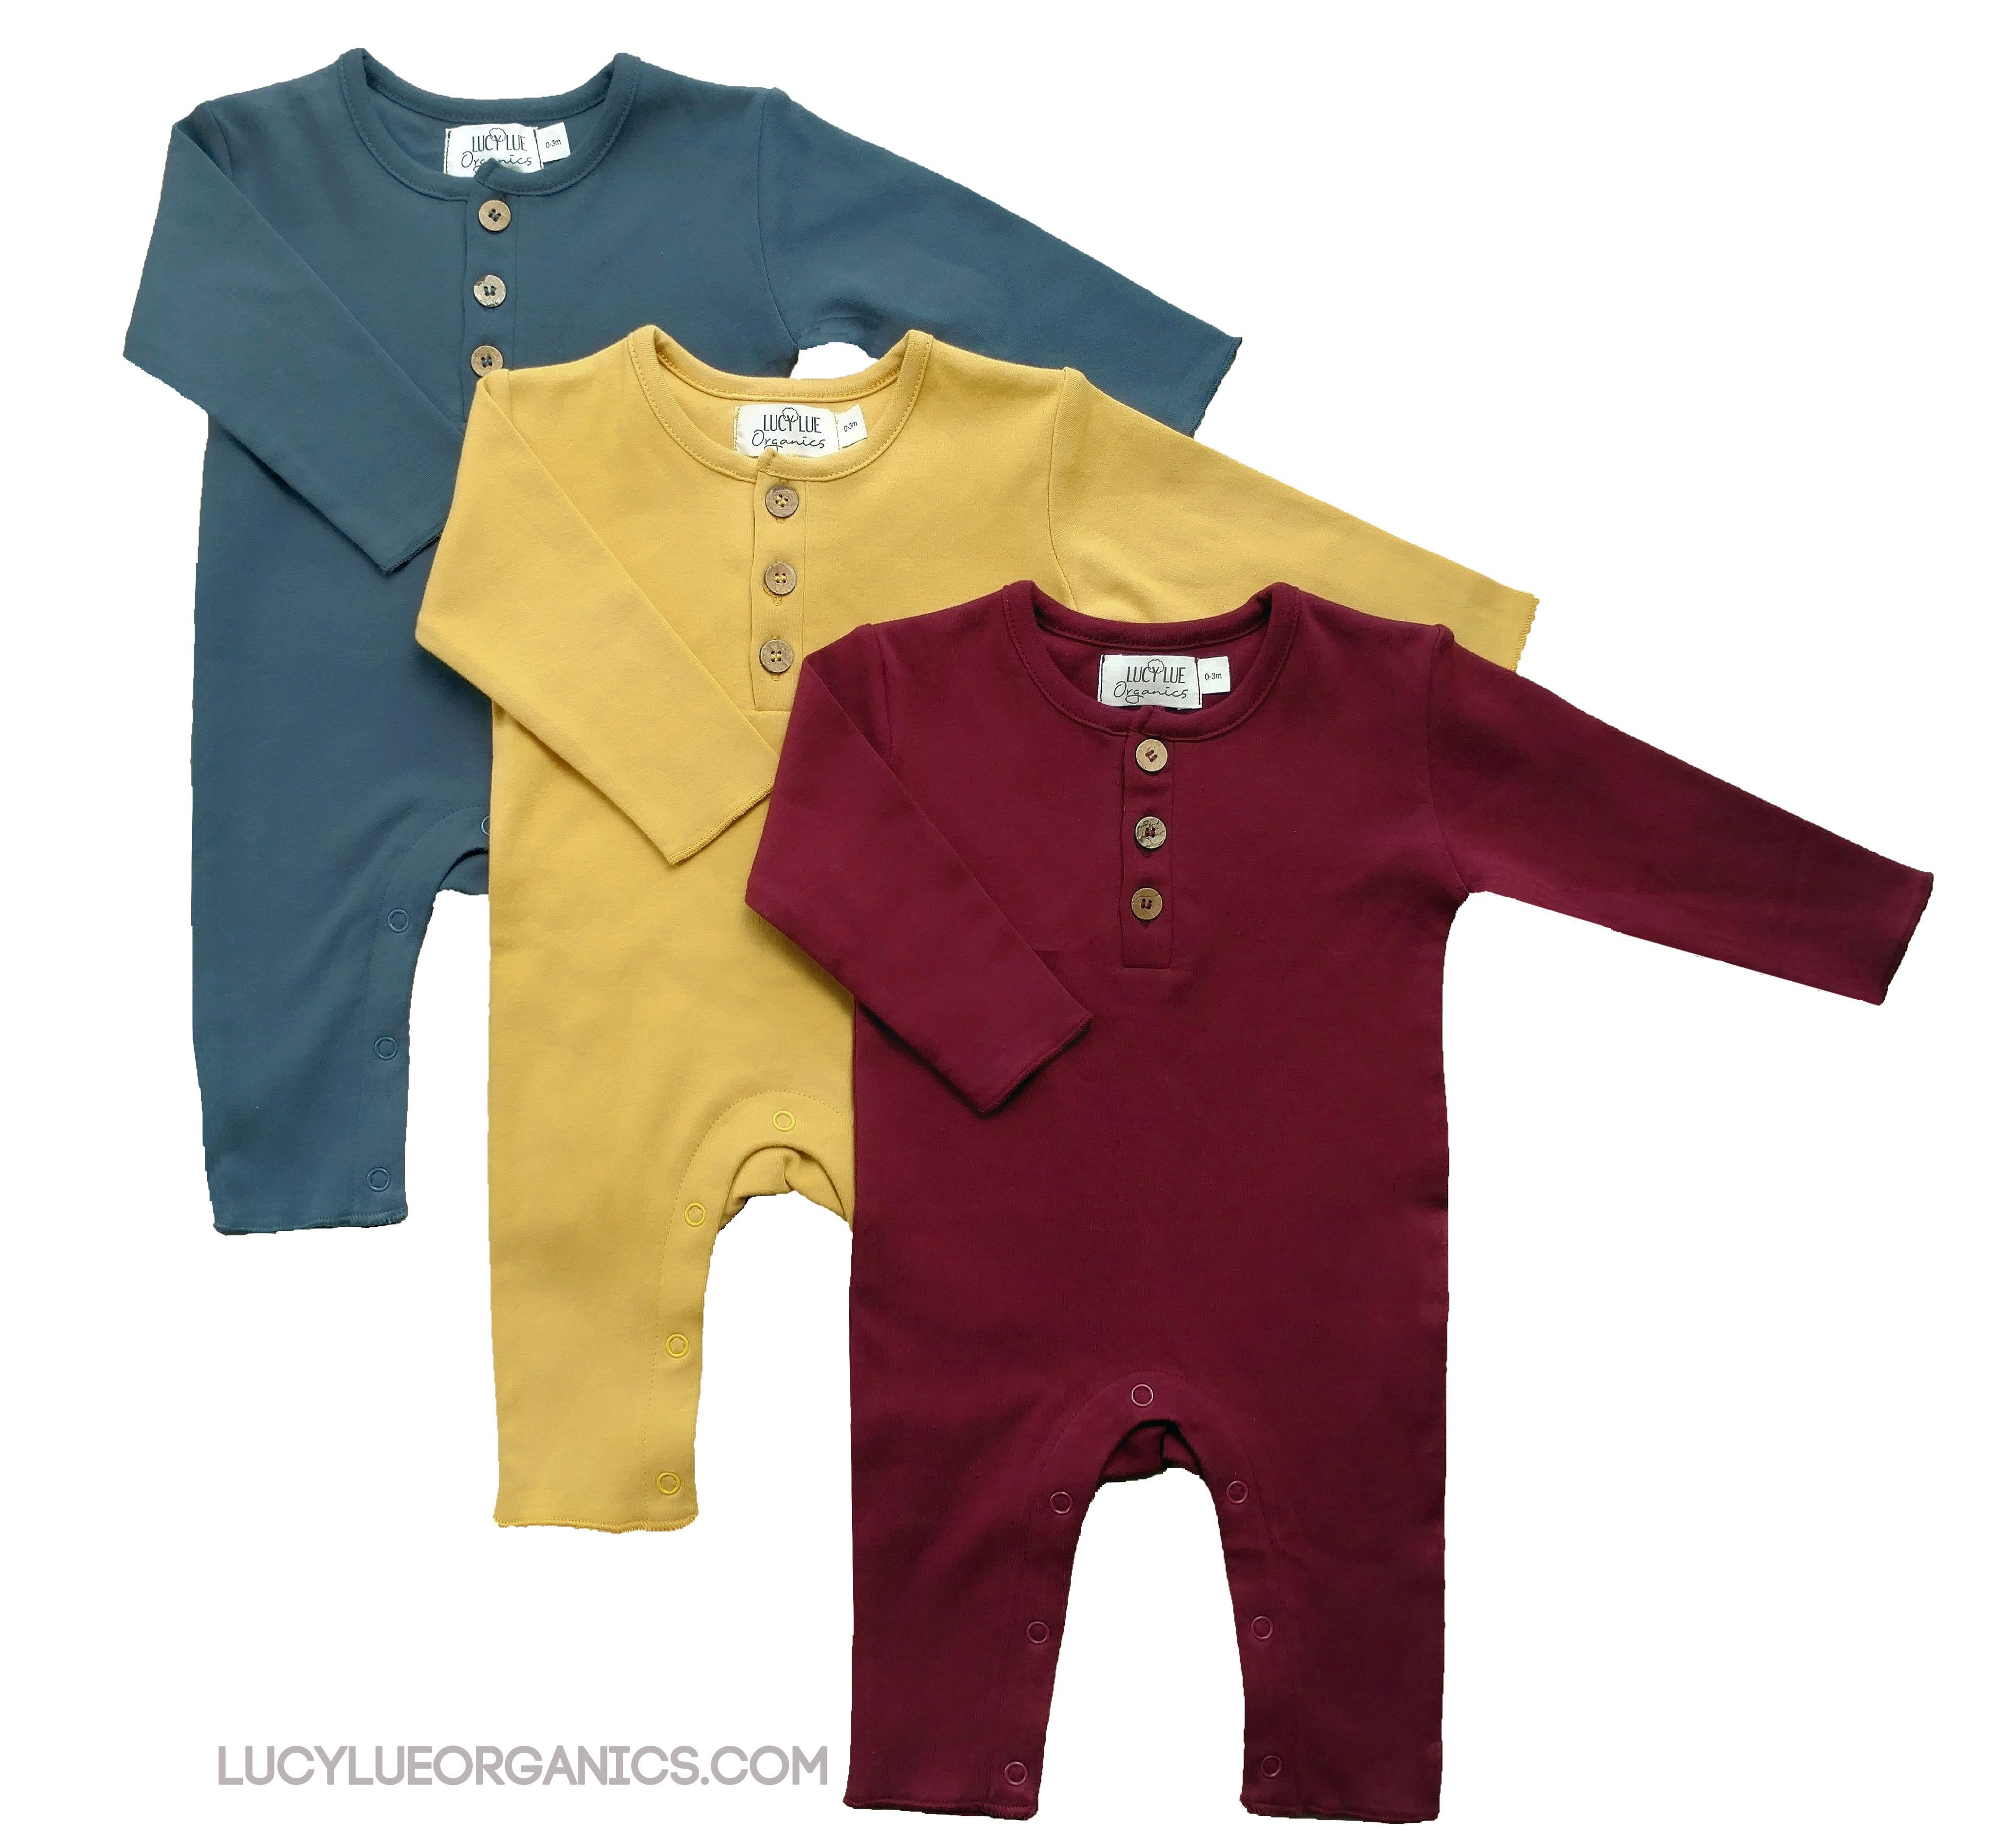 488cc101e 100% Organic cotton baby rompers by Lucy Lue Organics. Mahogany,  Butterscotch, and